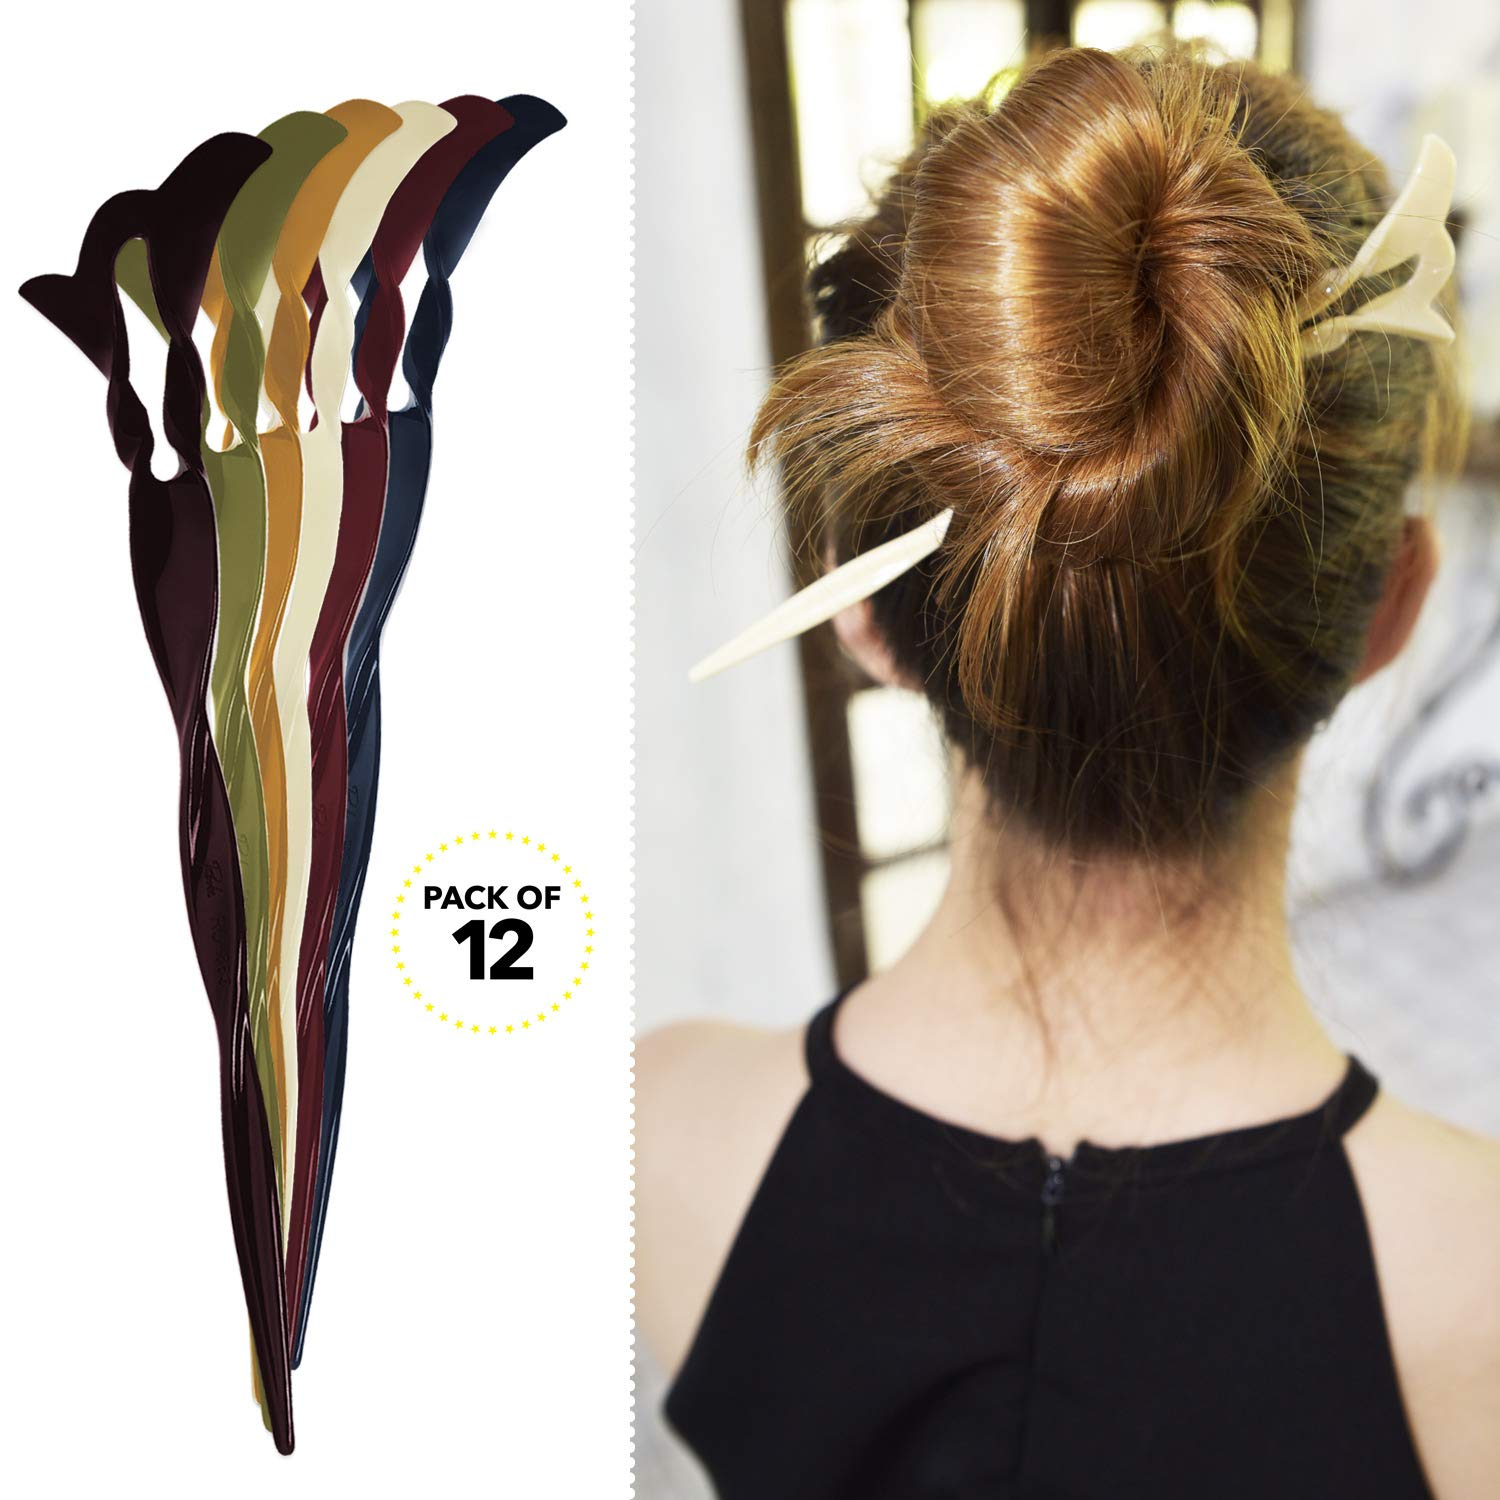 RC ROCHE ORNAMENT Womens Fashion Hair Sticks Spiral Plastic Twist Stylish Chopstick Bun Updo Hairpins Premium Quality Beauty Accessory Girls Ladies, 12 Pack Count Medium Classic Multicolor by RC ROCHE ORNAMENT